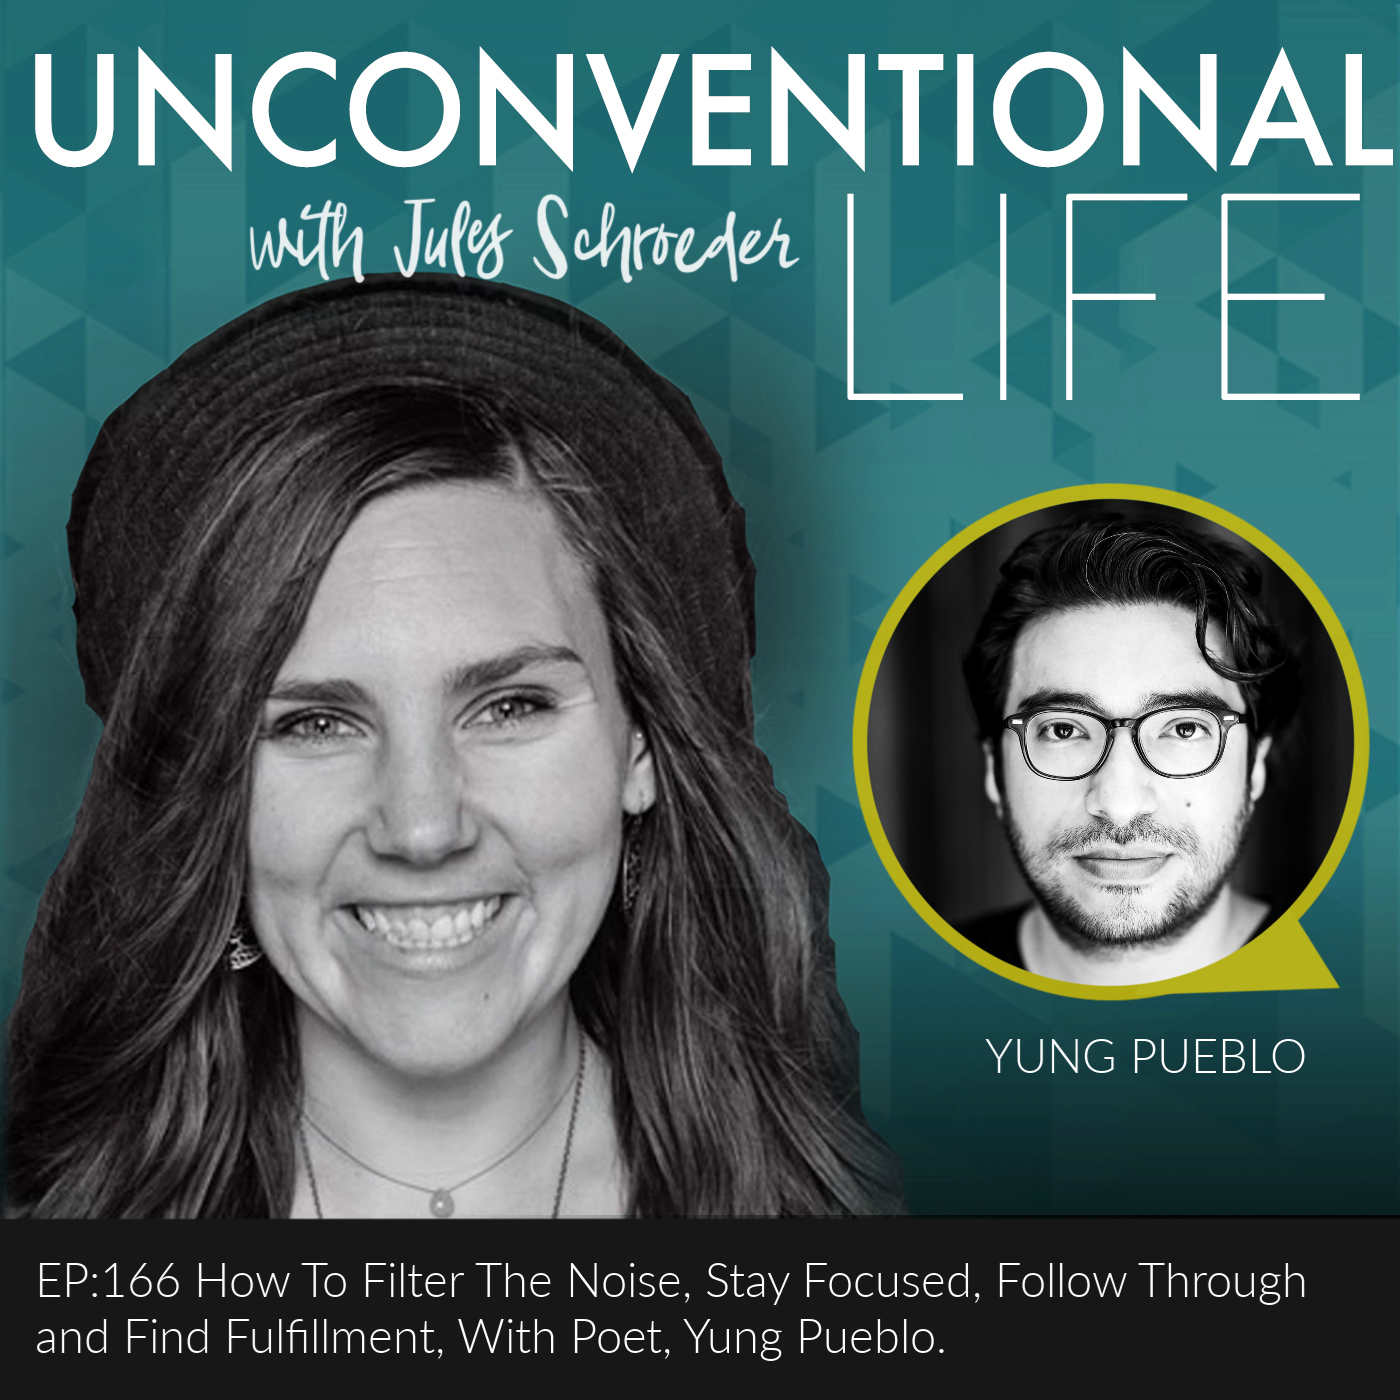 Ep:166 How To Filter The Noise, Stay Focused, Follow Through and Find Fulfillment, With Poet, Yung Pueblo